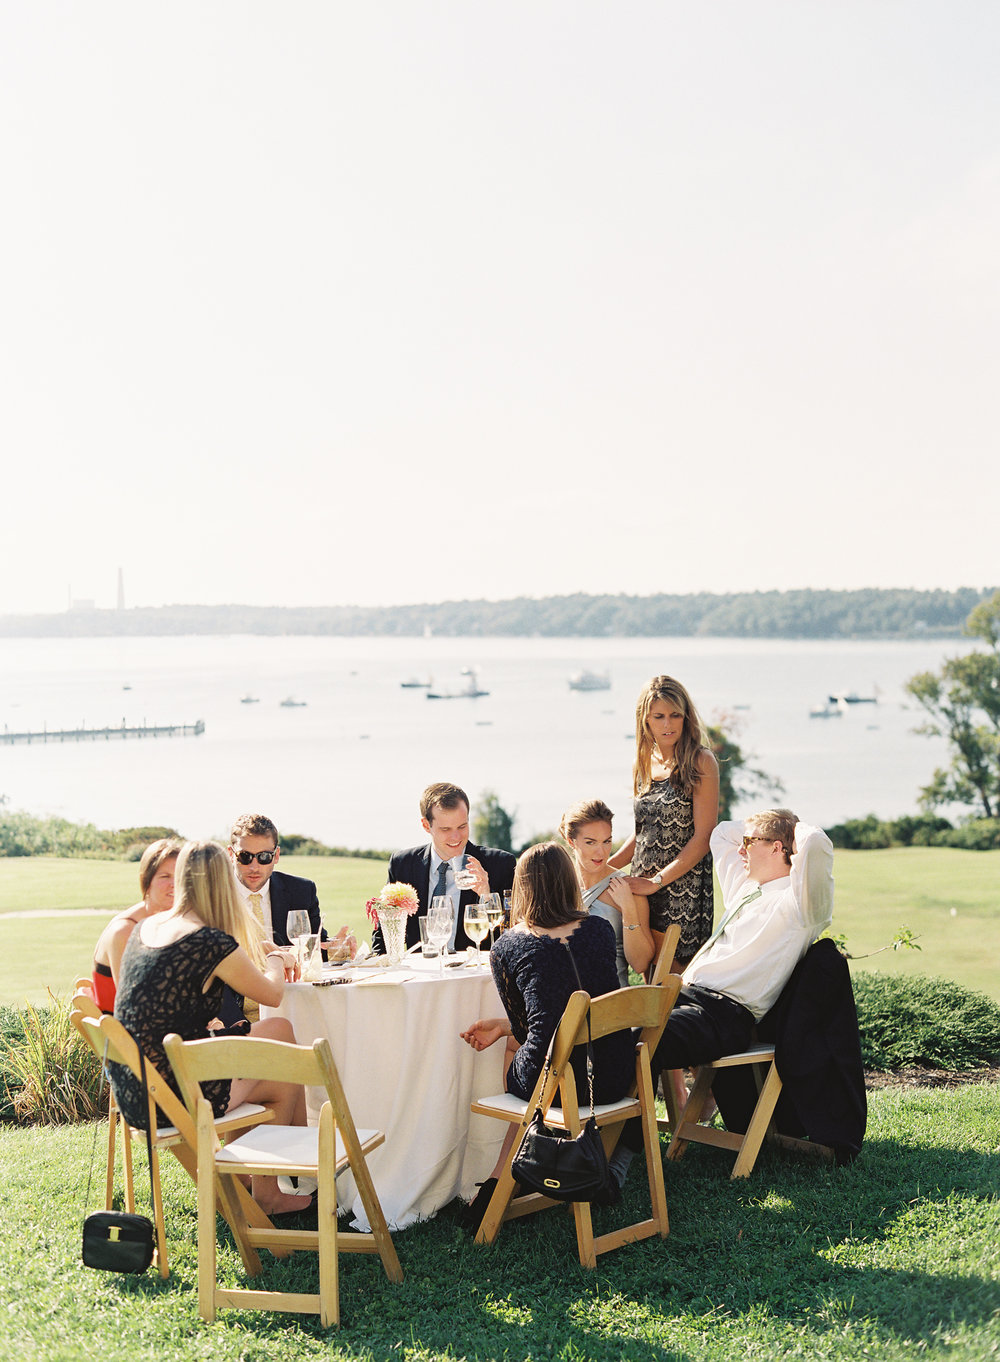 chebeague_island_inn_wedding_gabe_aceves028.JPG